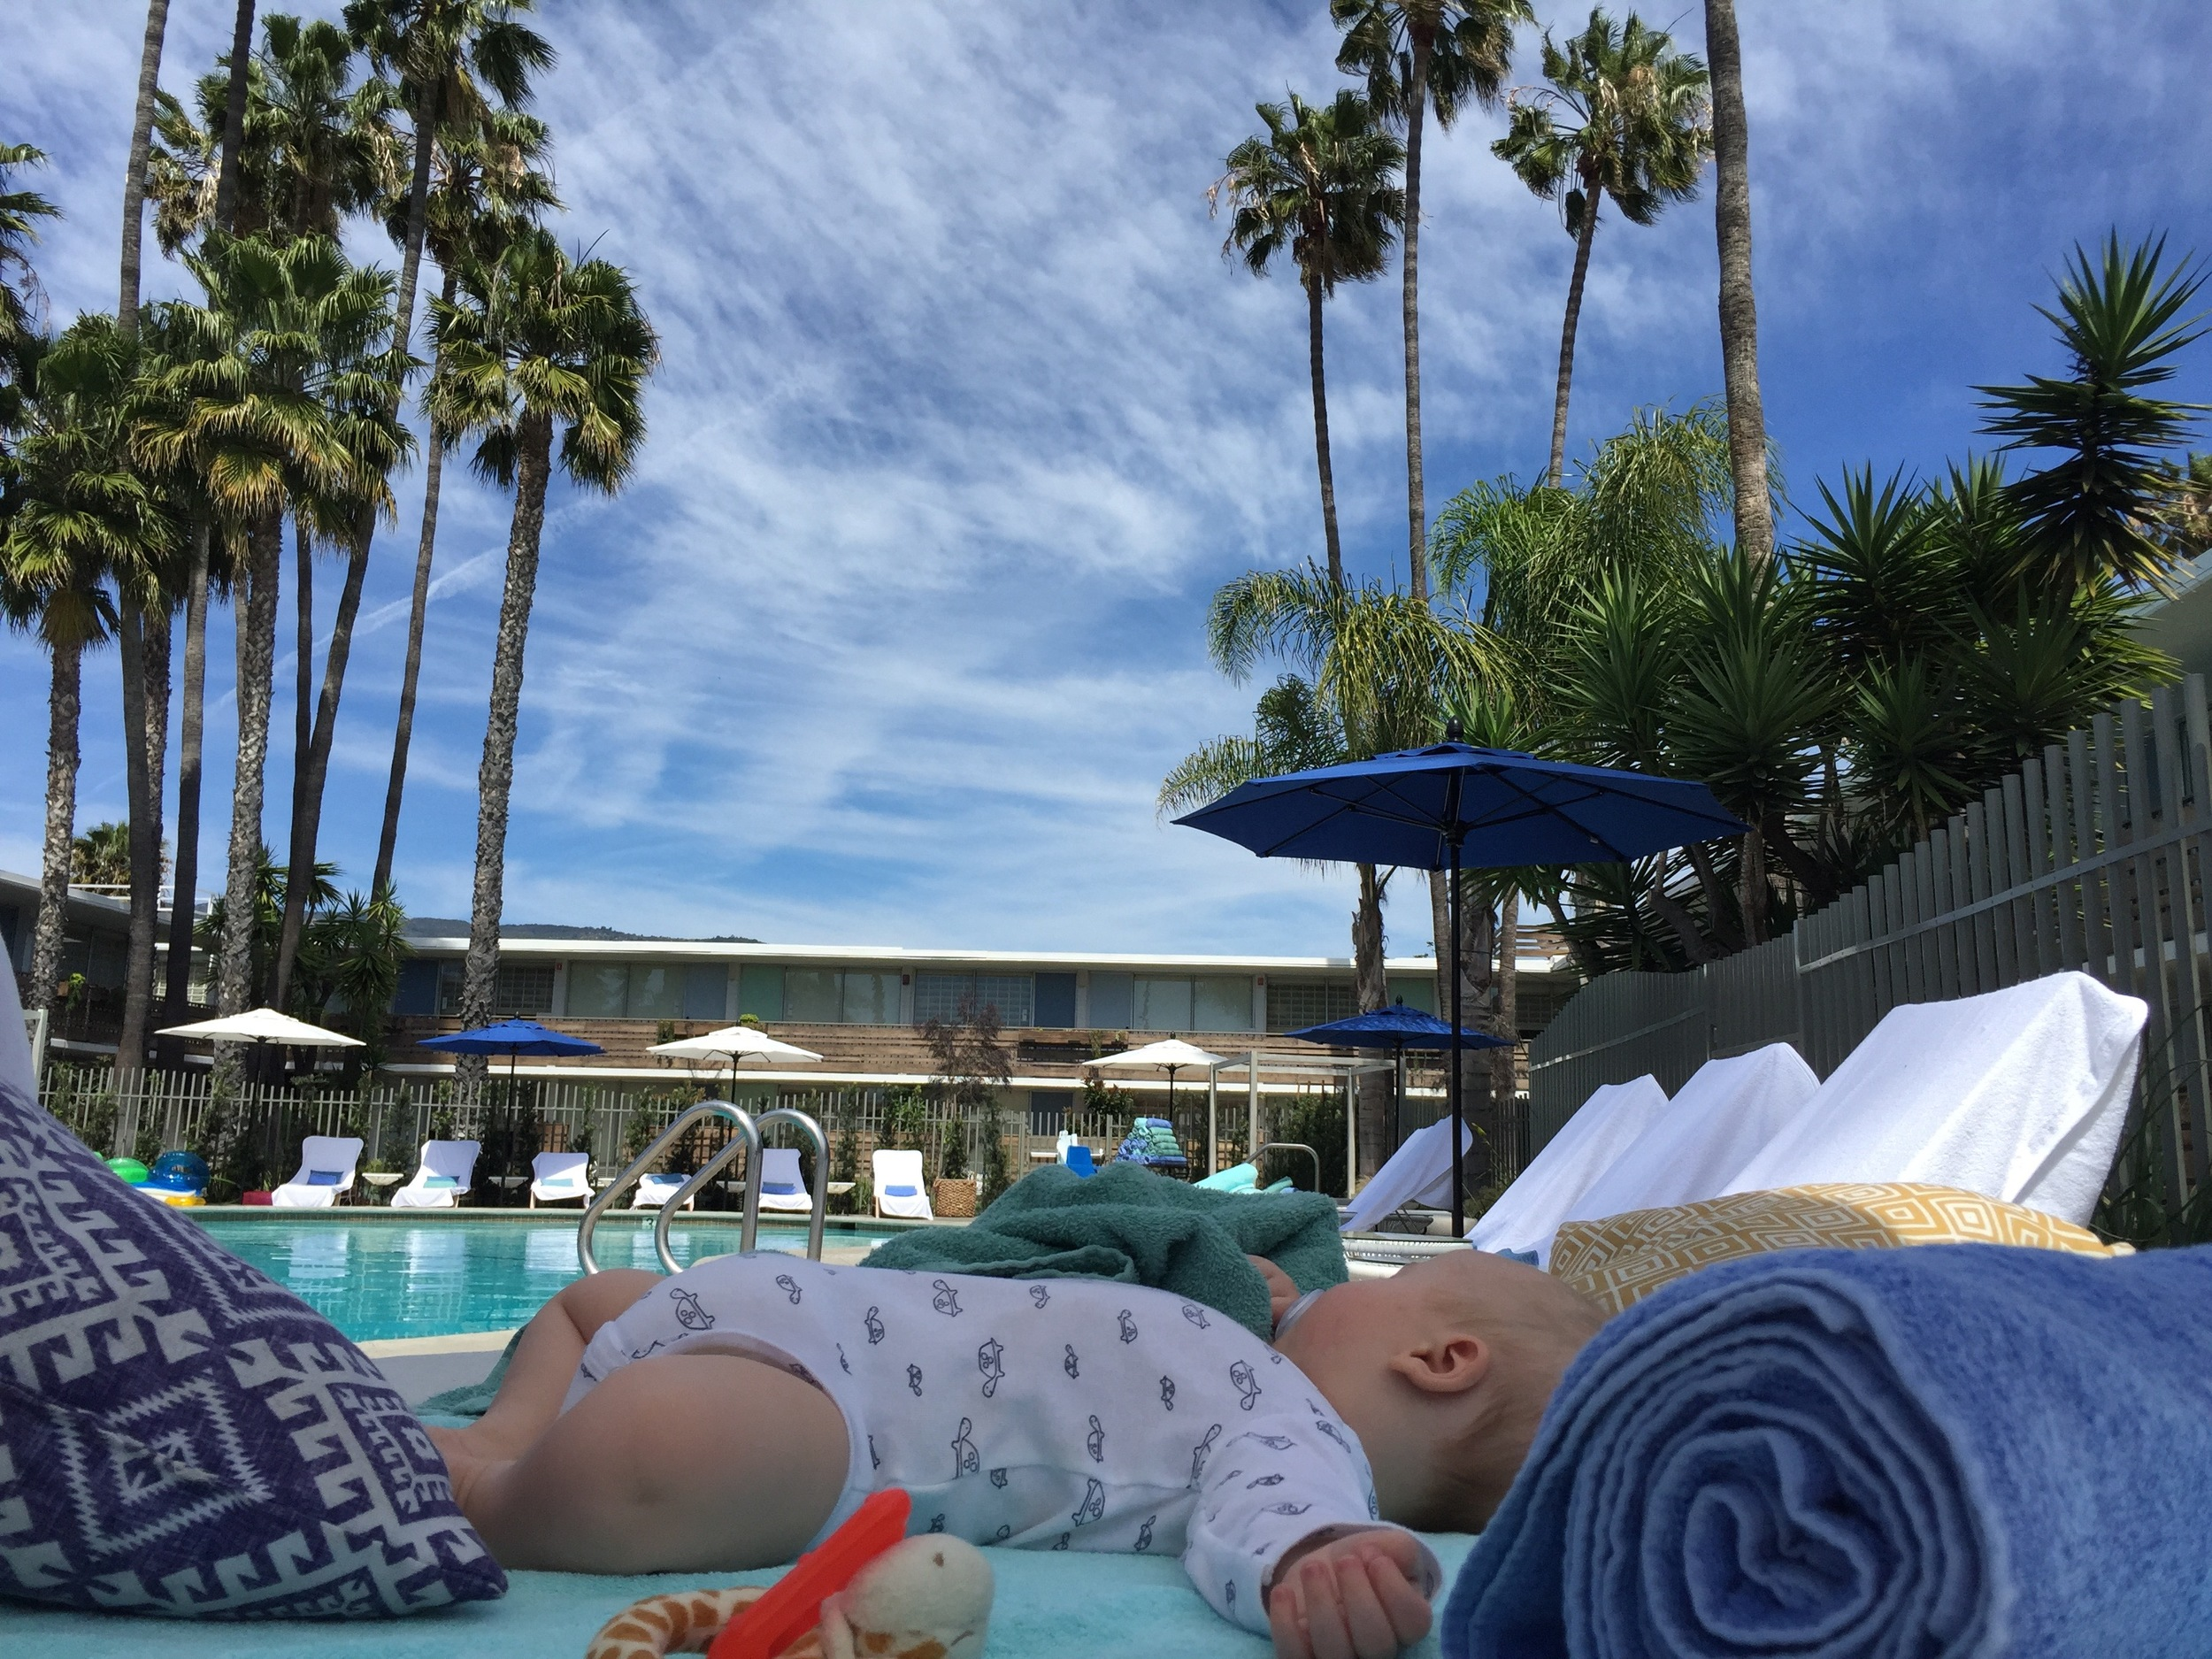 Chilling with Baby Styler by the pool at The Goodland.